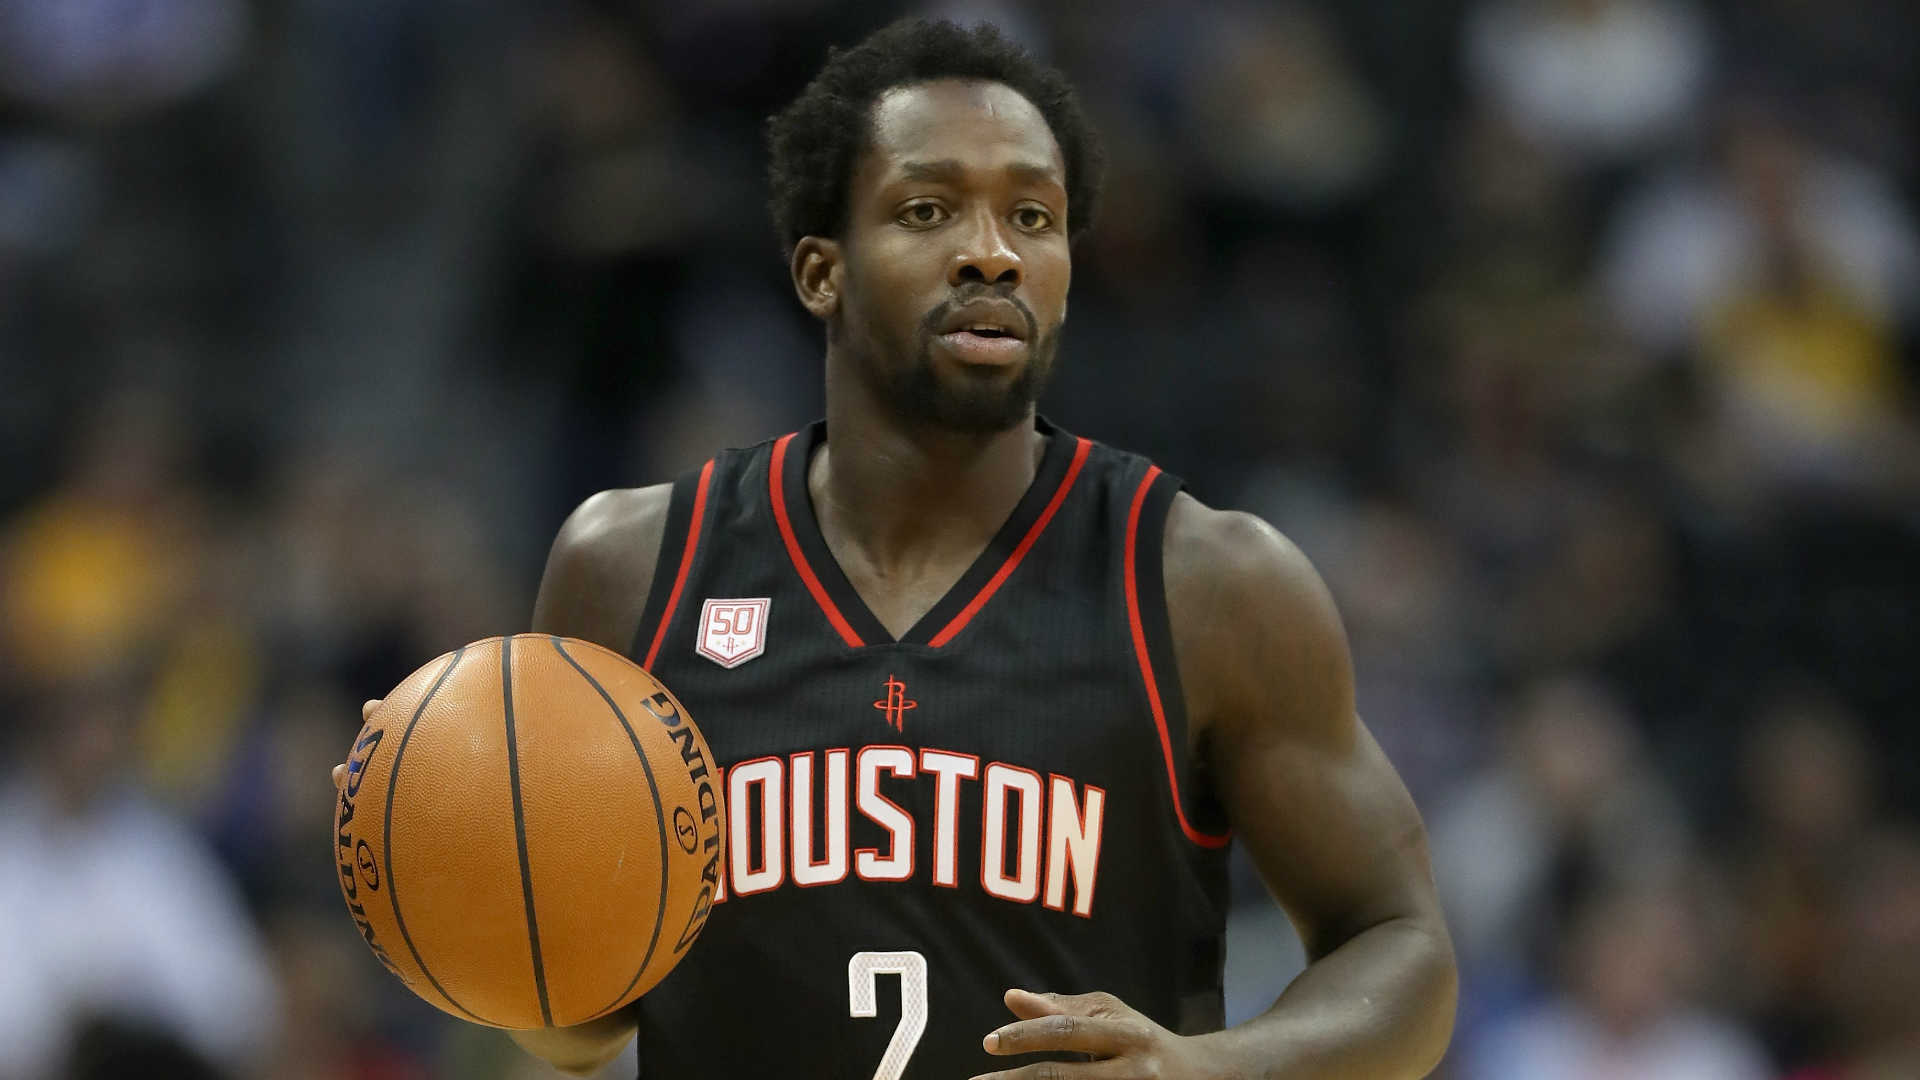 Thunder knock Rockets guard Beverley down, but not out